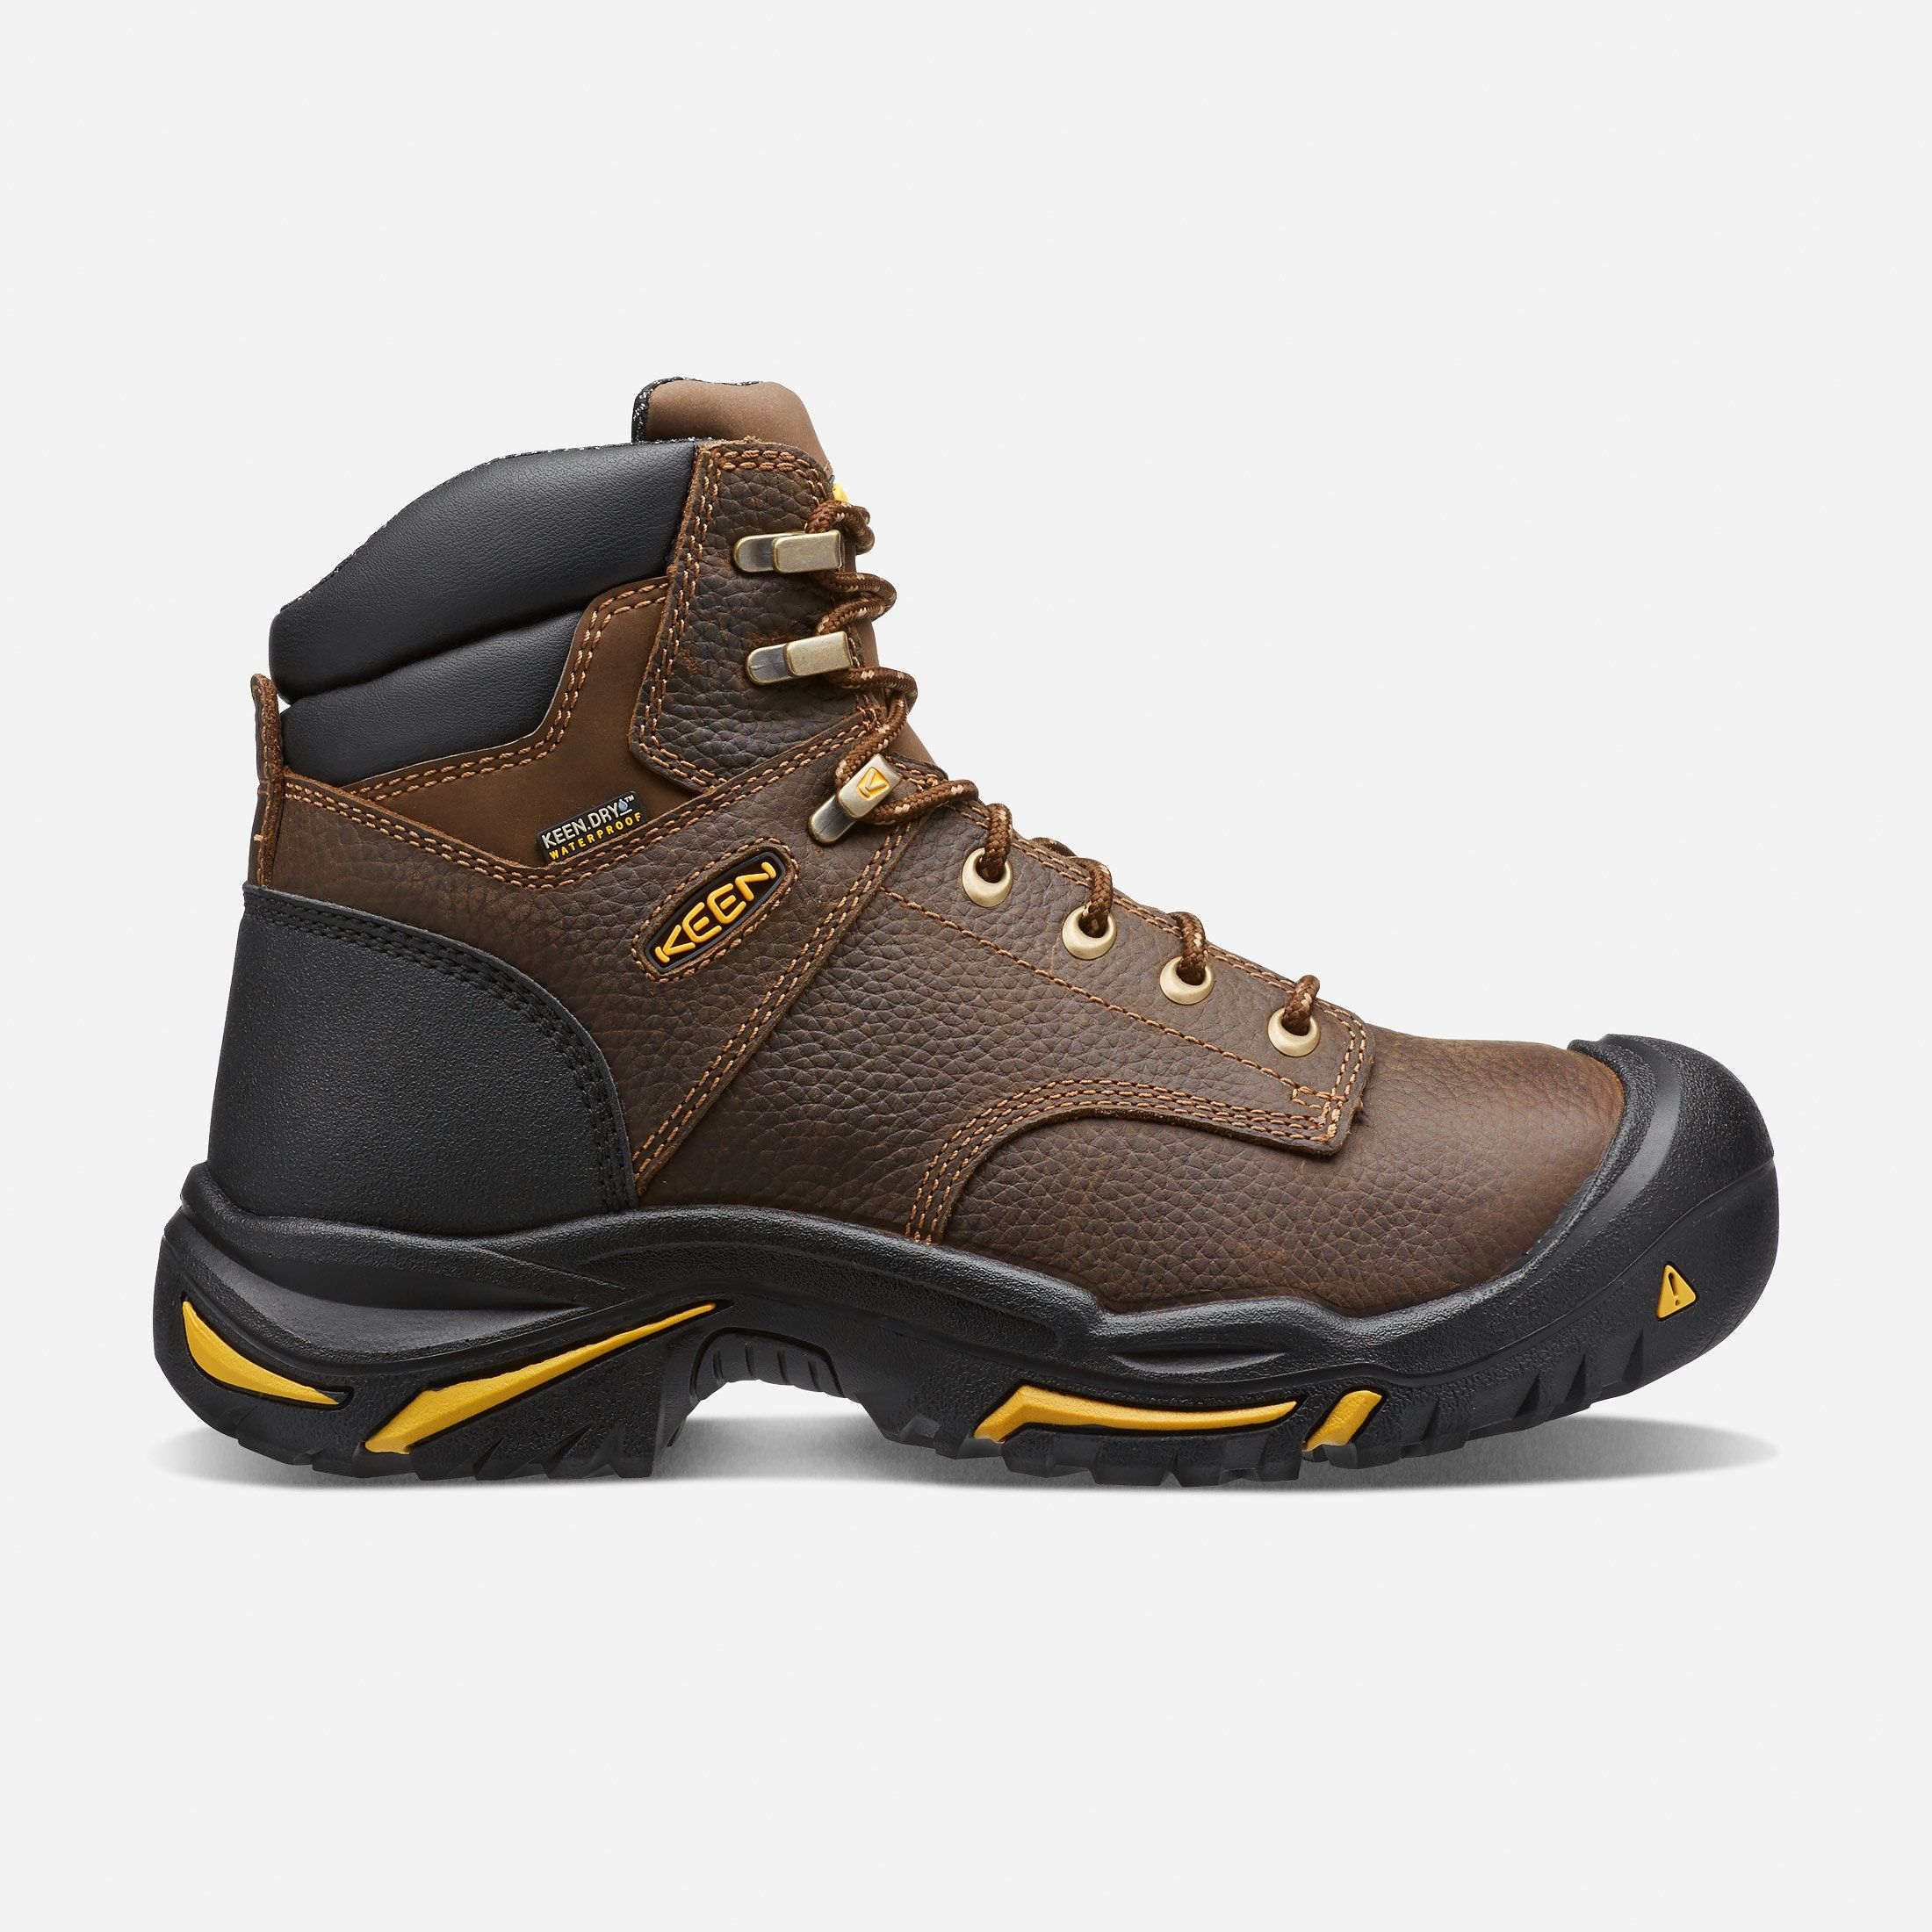 mens hiking boots size 15